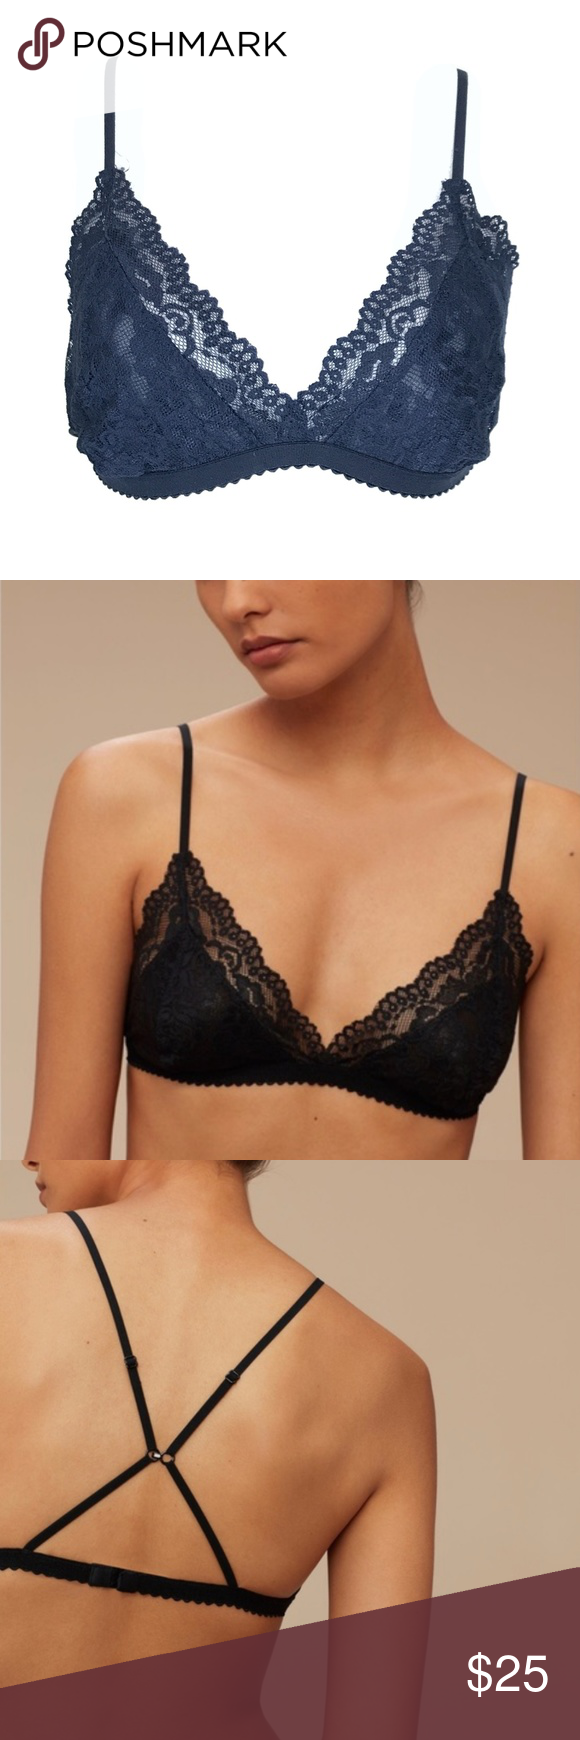 10a63a989c Aritzia Talula Monterey Lace Navy Blue Bralette A two way bralette in navy  blue lace.